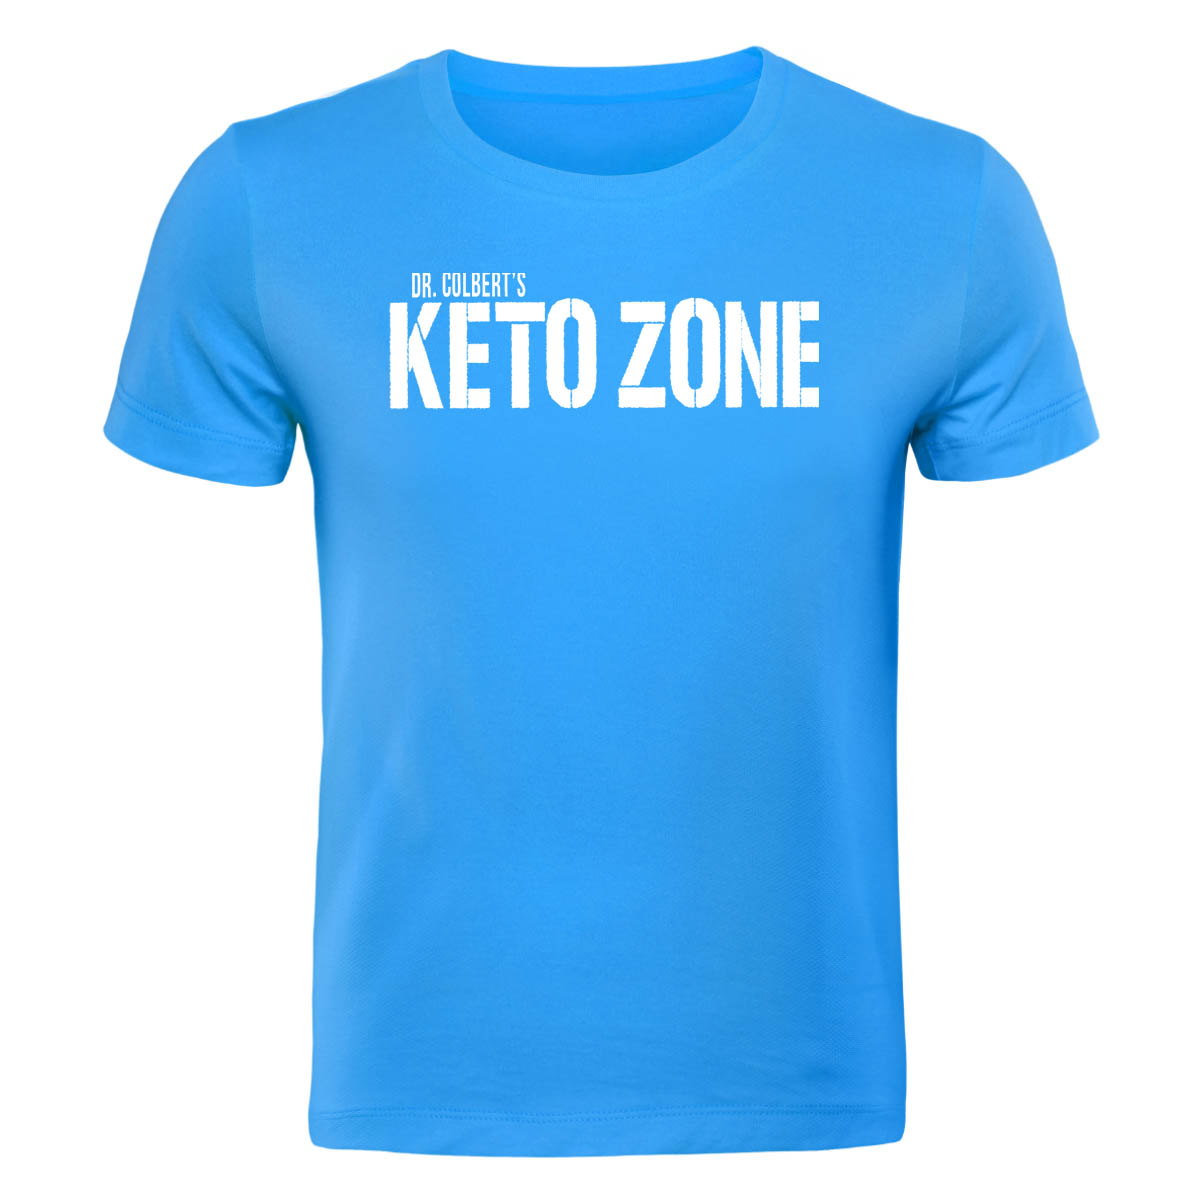 New ! Keto Shirts For Men (Teal)